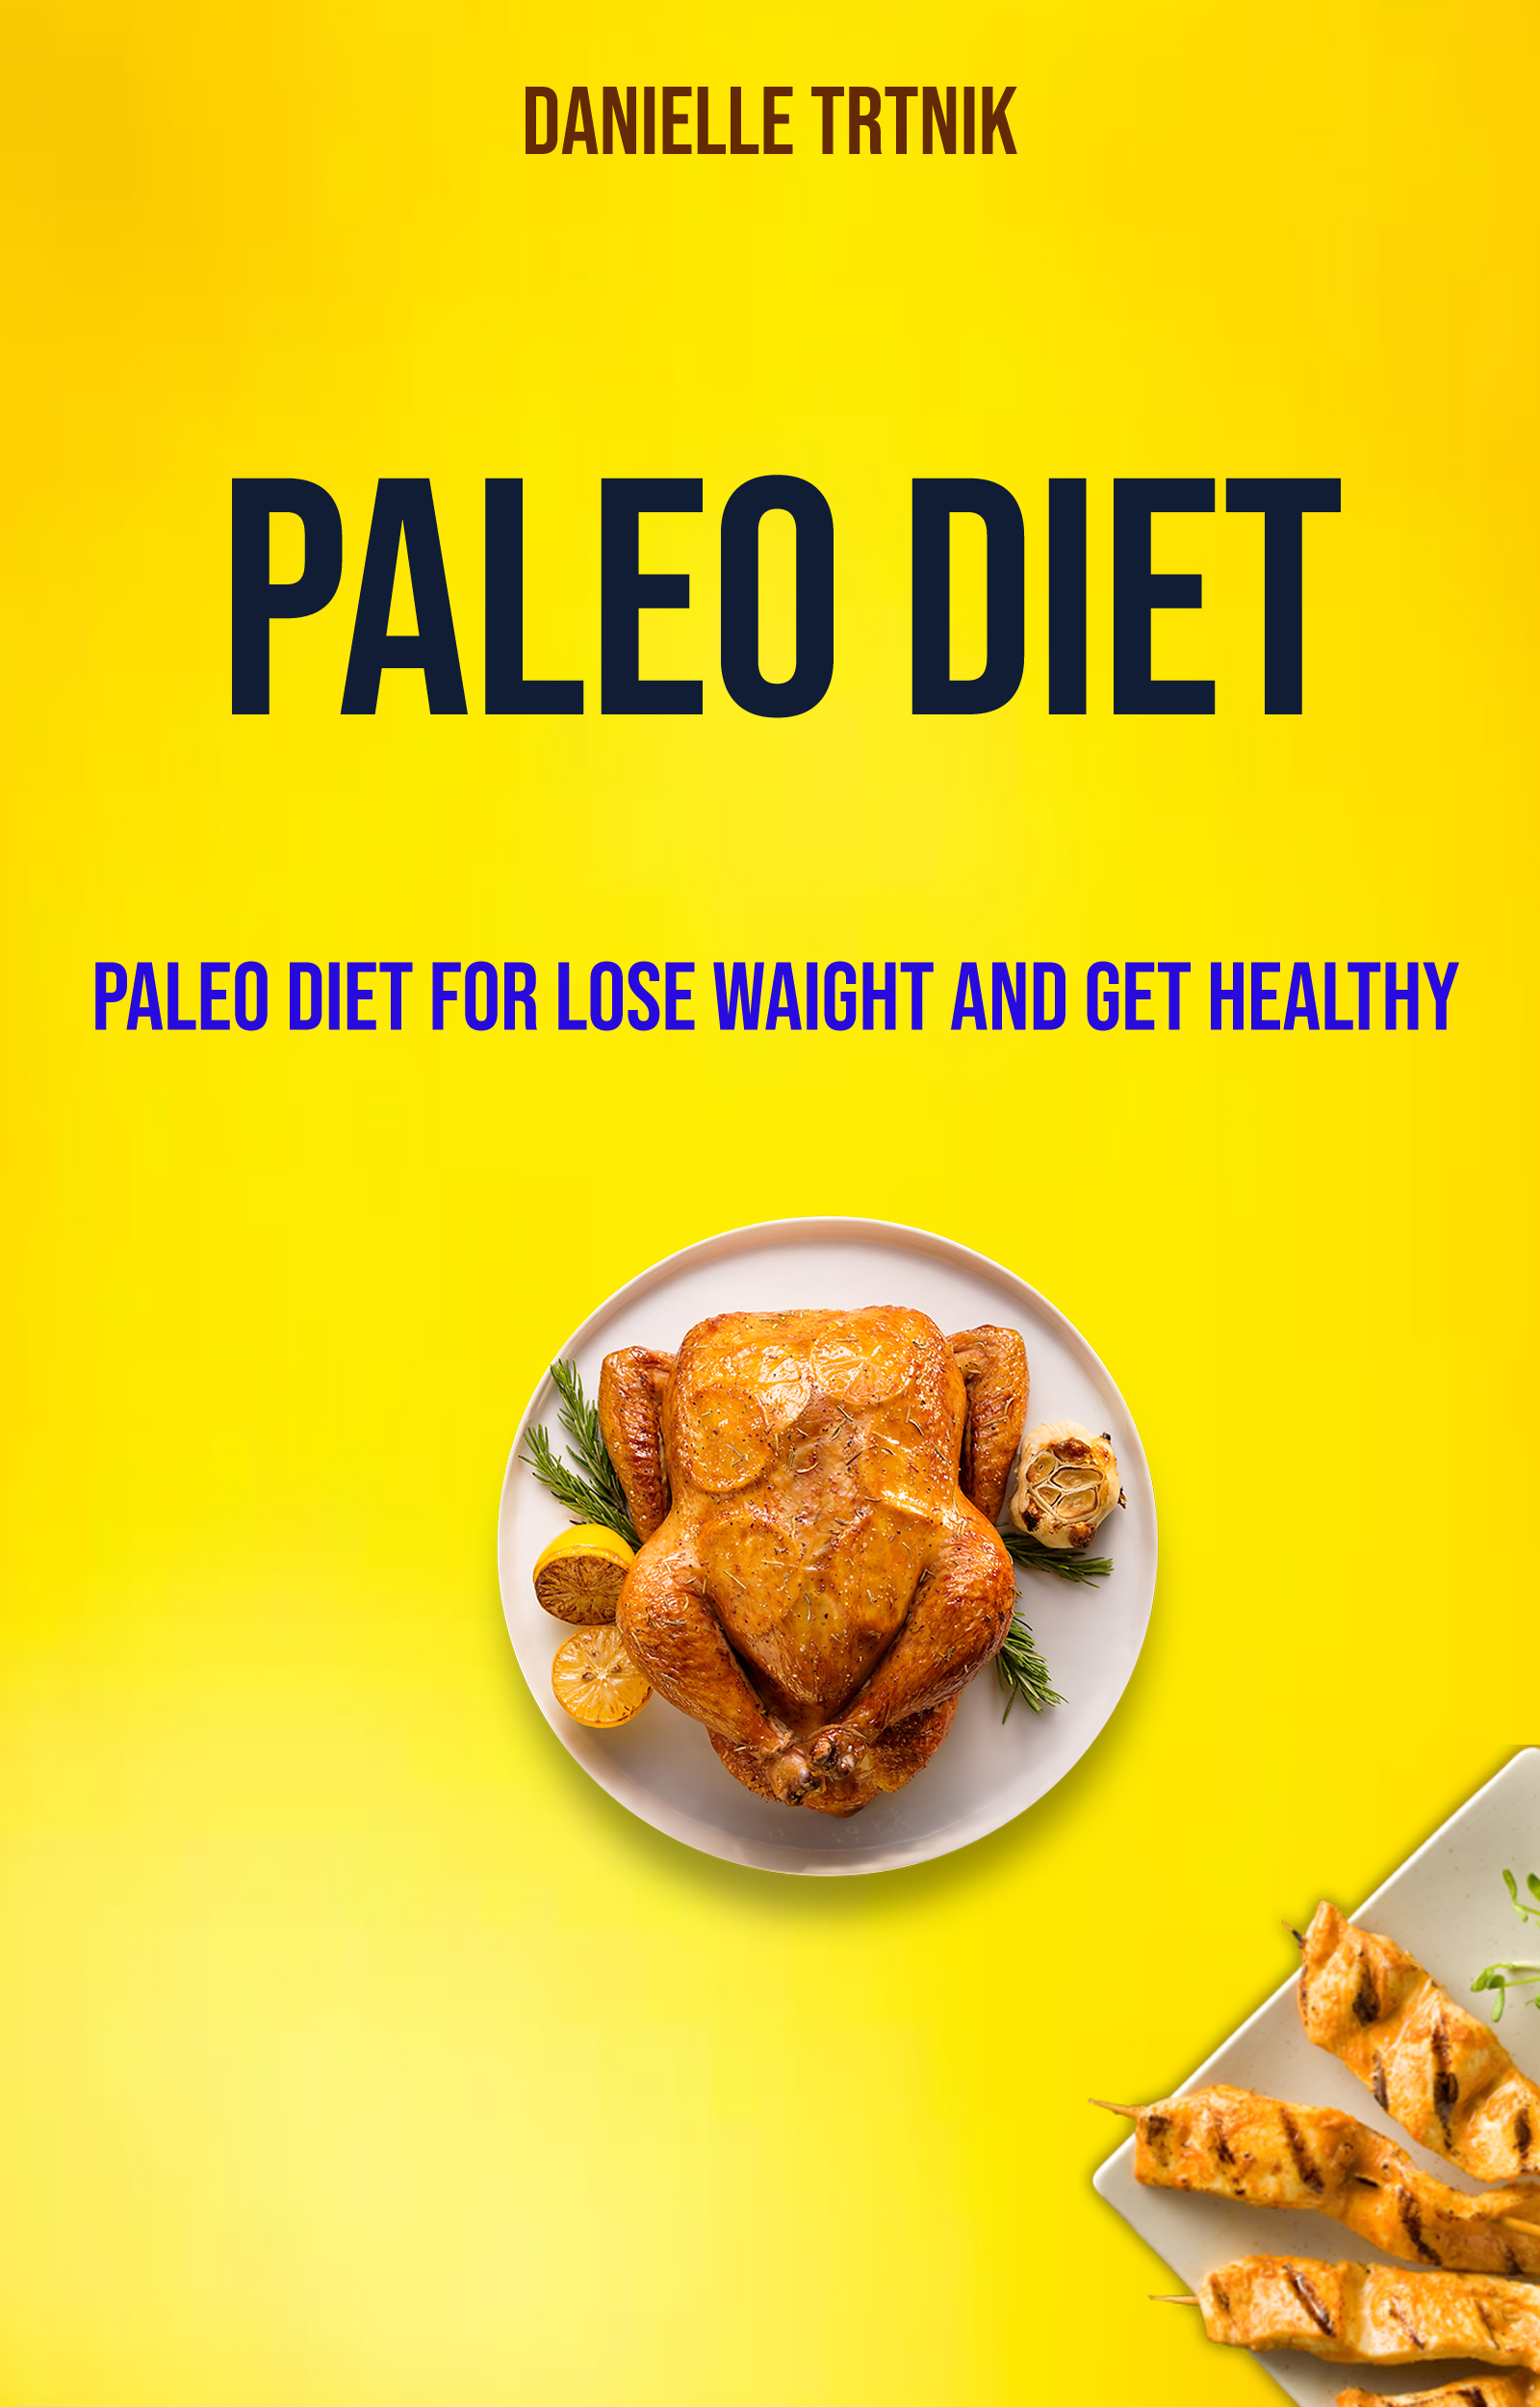 Paleo diet : paleo diet for lose waight and get healthy